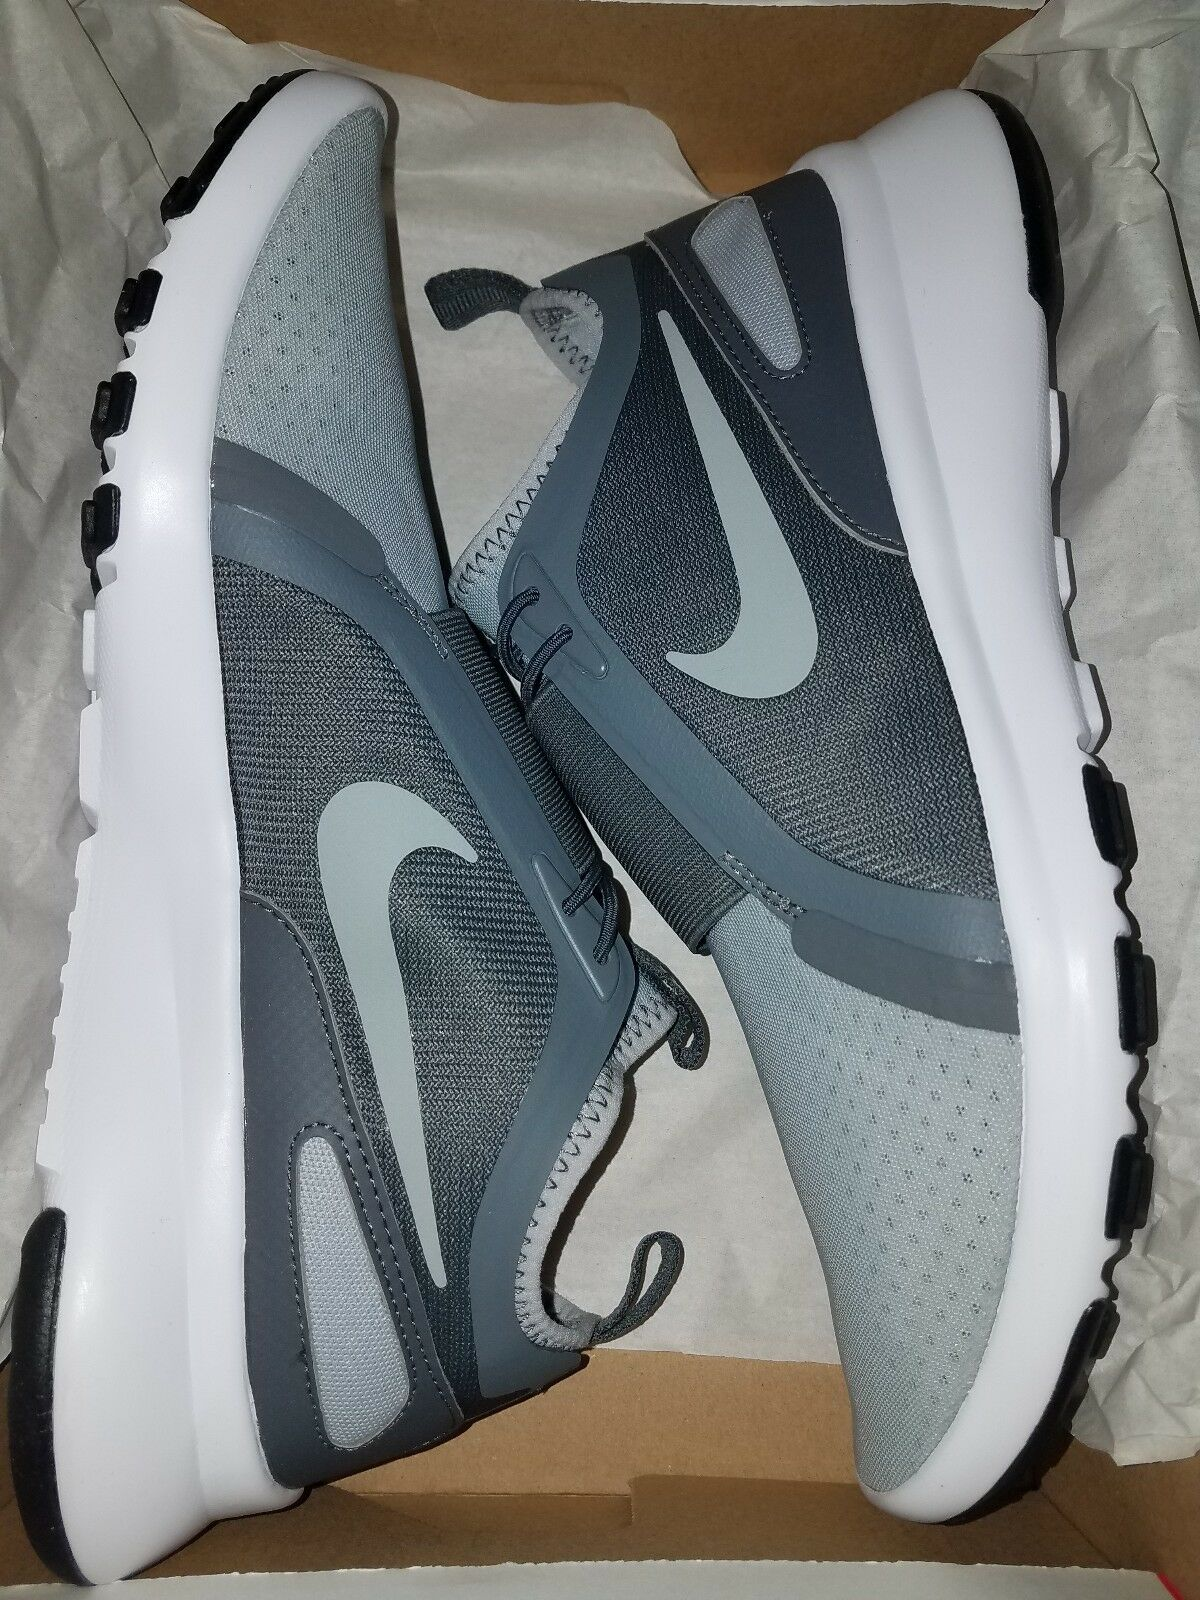 Mens Nike Current Slip On. Brand New in Box. 874160001. Size 9.5